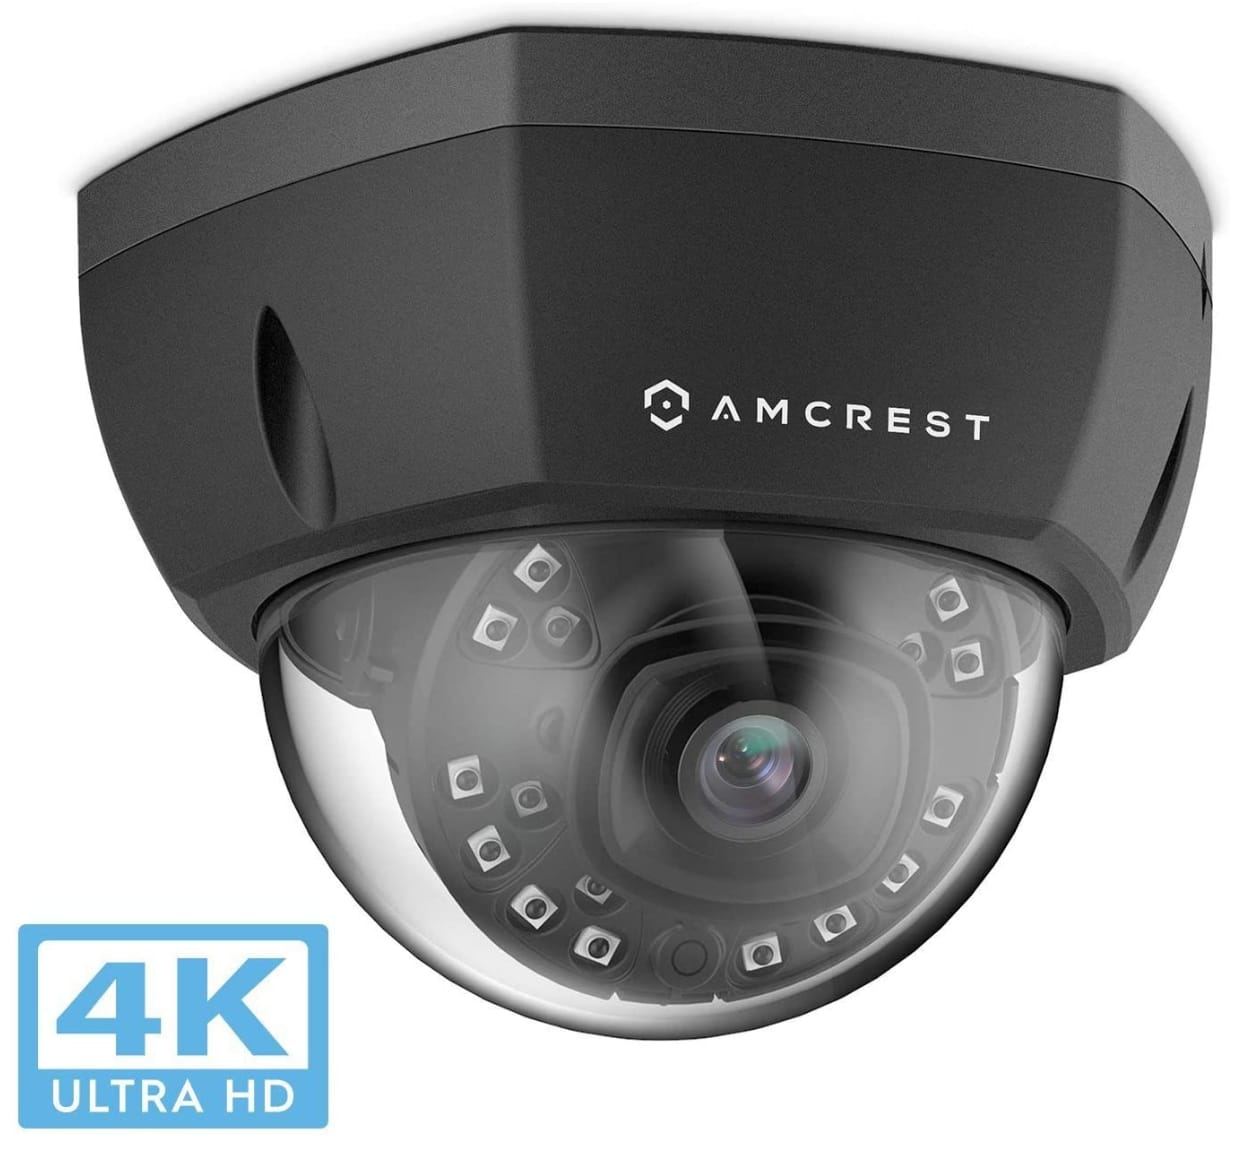 Amcrest UltraHD 4K (8MP) Dome POE IP Camera, 3840x2160, 98ft NightVision, 2.8mm Lens $60.82